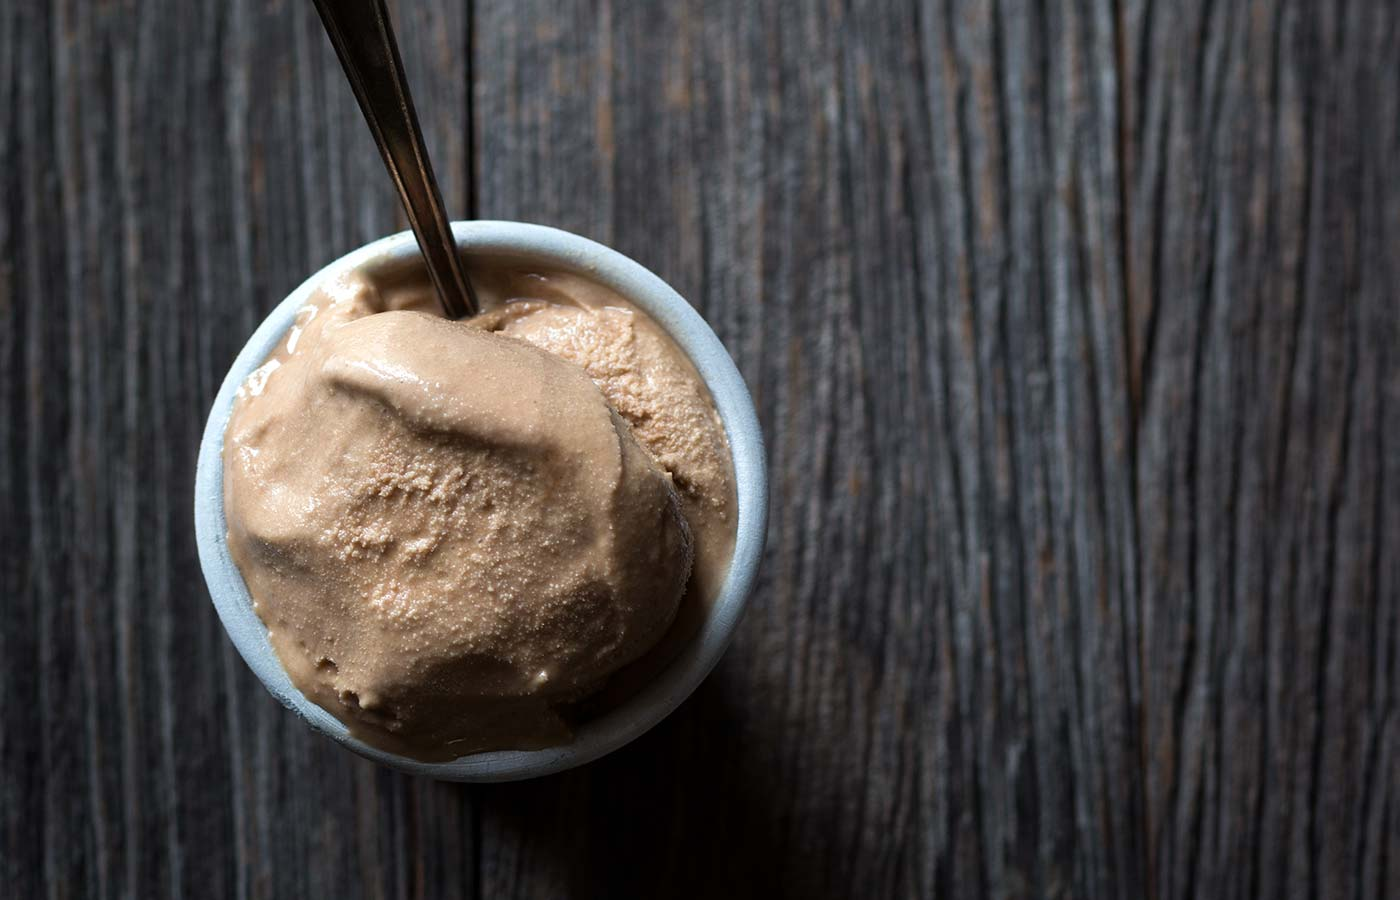 You don't want to miss this incredible recipe for Malted Milk Chocolate Bourbon Ice Cream. It's a decadent, boozy treat that's perfect for homemade ice cream lovers. SavorySimple.net.